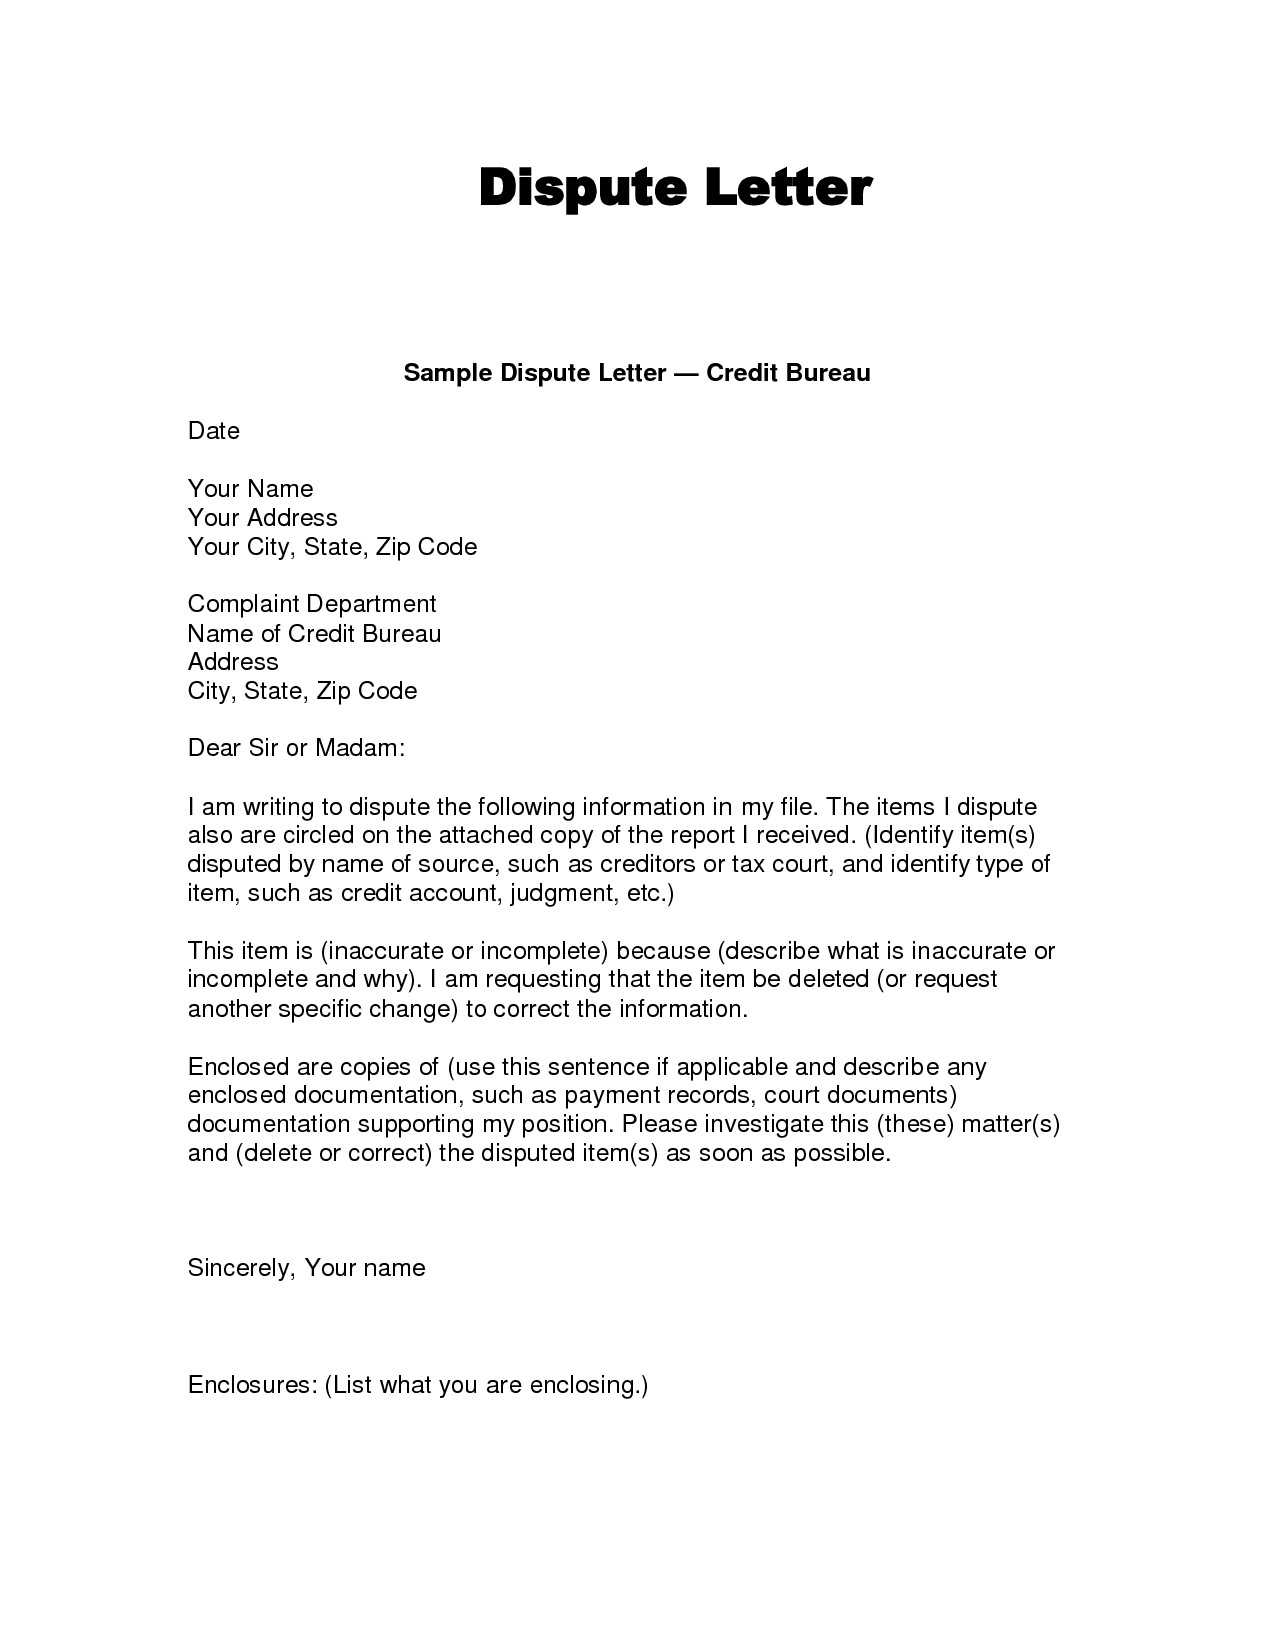 Dispute Letter to Credit Bureau Template - Sample Credit Report Pdf with How to Write A Dispute Letter Luxury